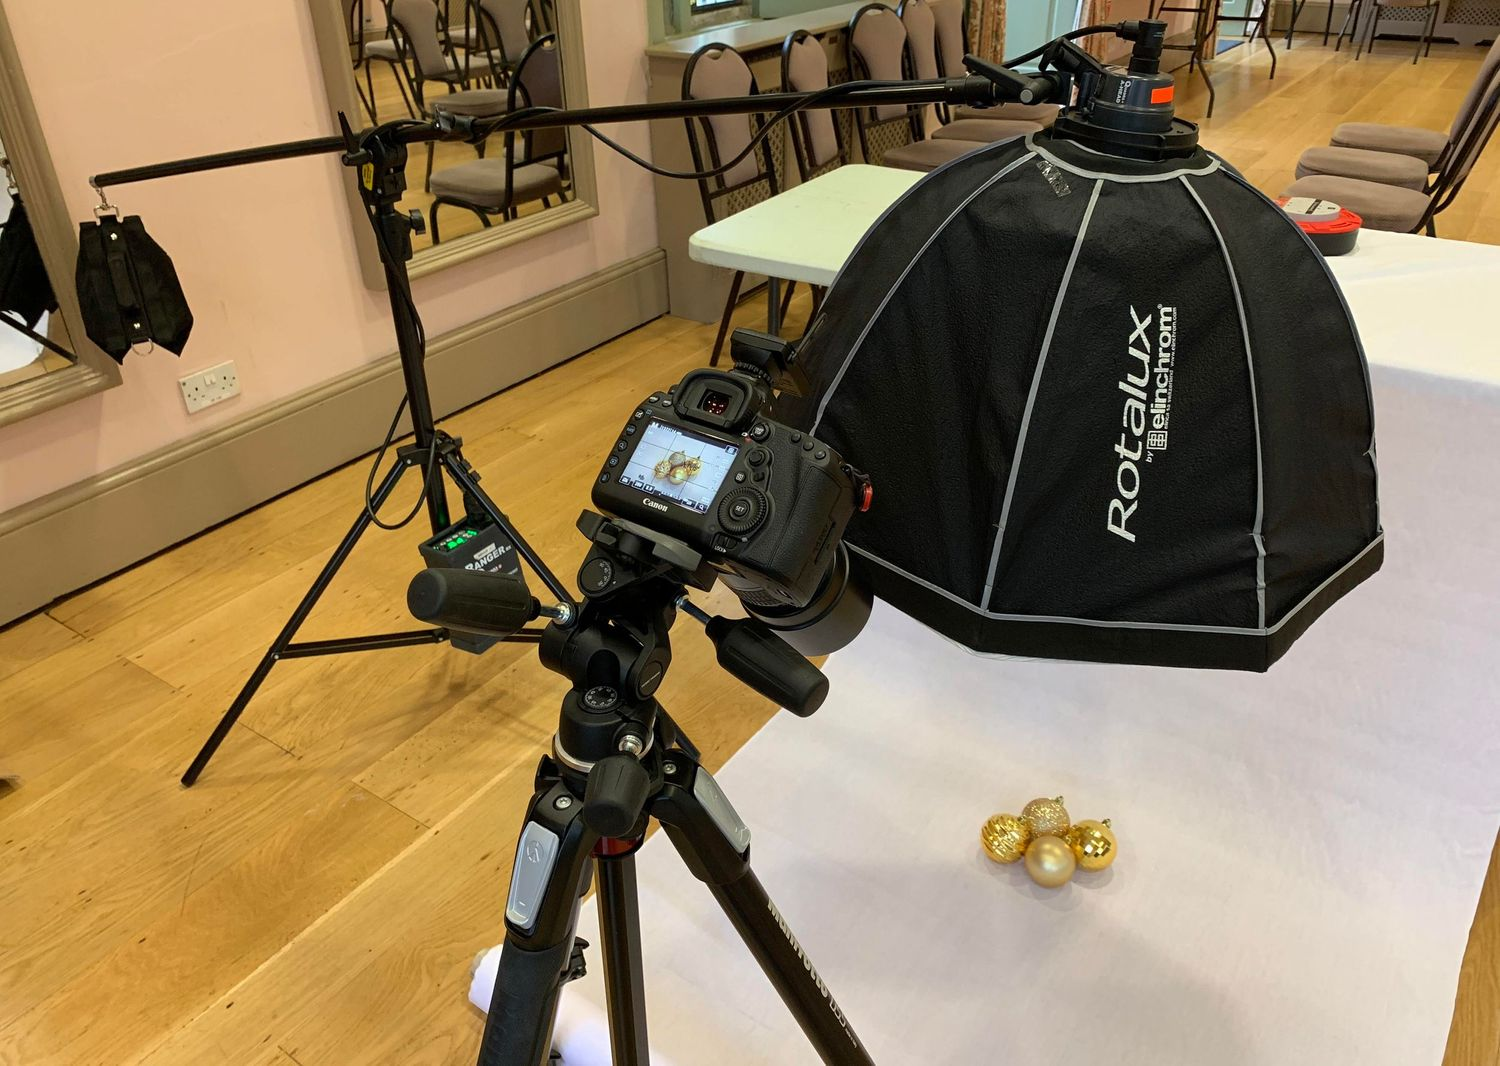 Behind the scenes photo of product photography studio by Danny Loo